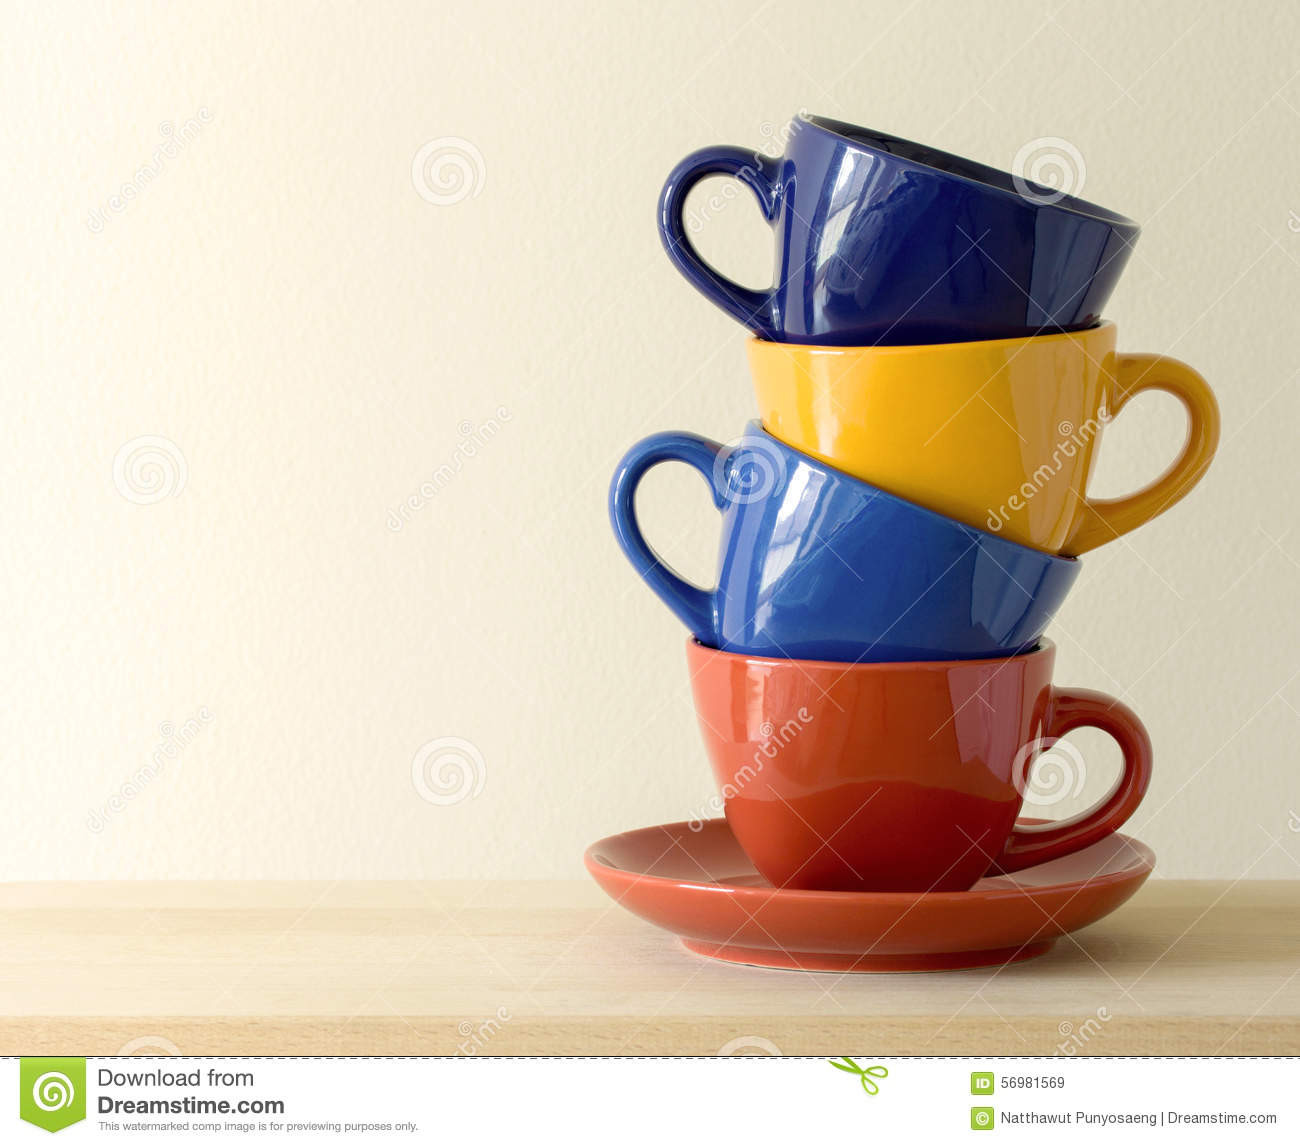 stacked teacup vase of stack of mugs castrophotos intended for stack of colorful coffee cups on table stock photo image